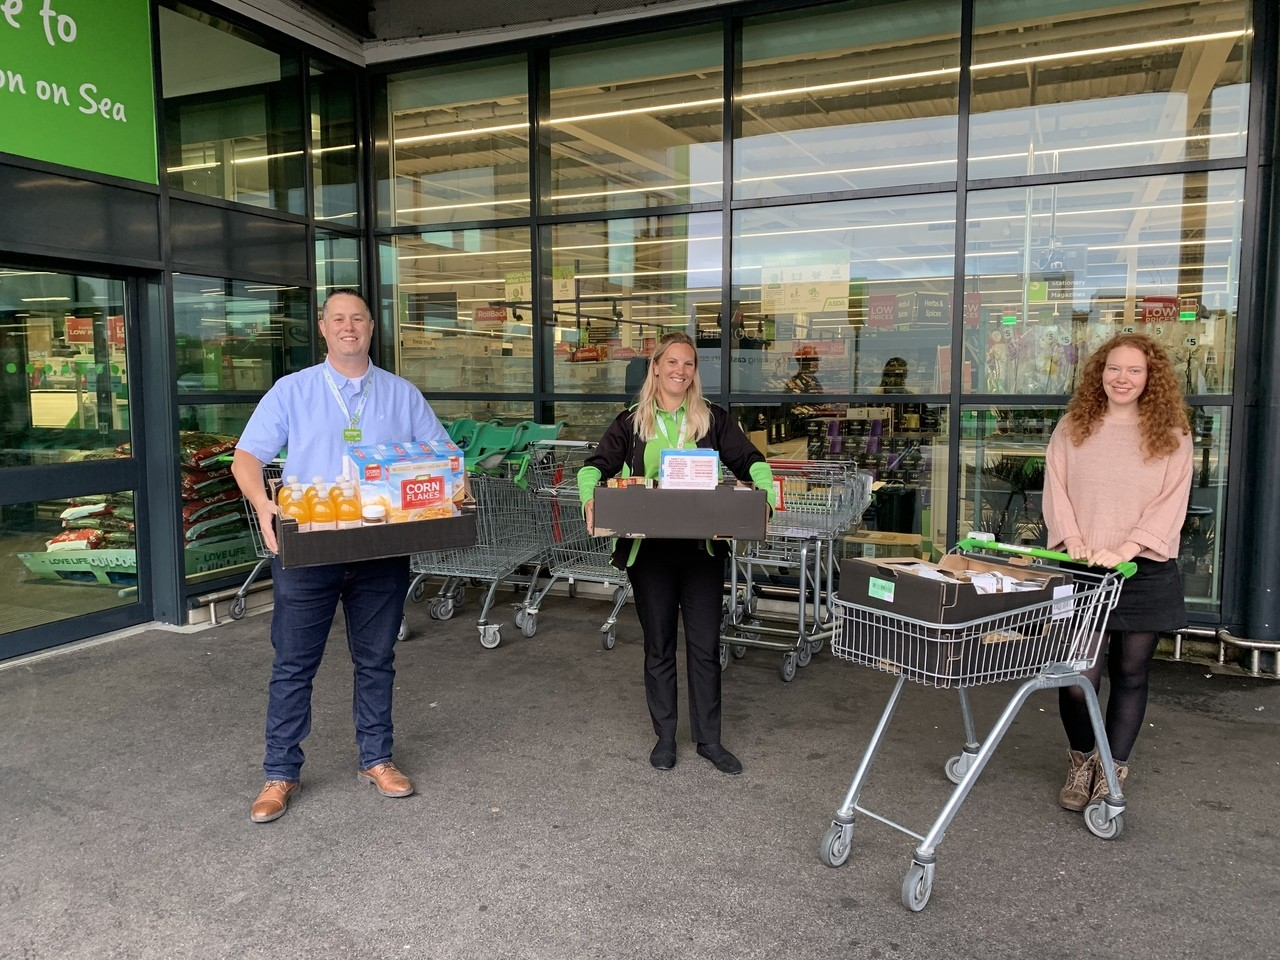 Donation of food items to Sanctuary Supported Living | Asda Clacton-on-Sea